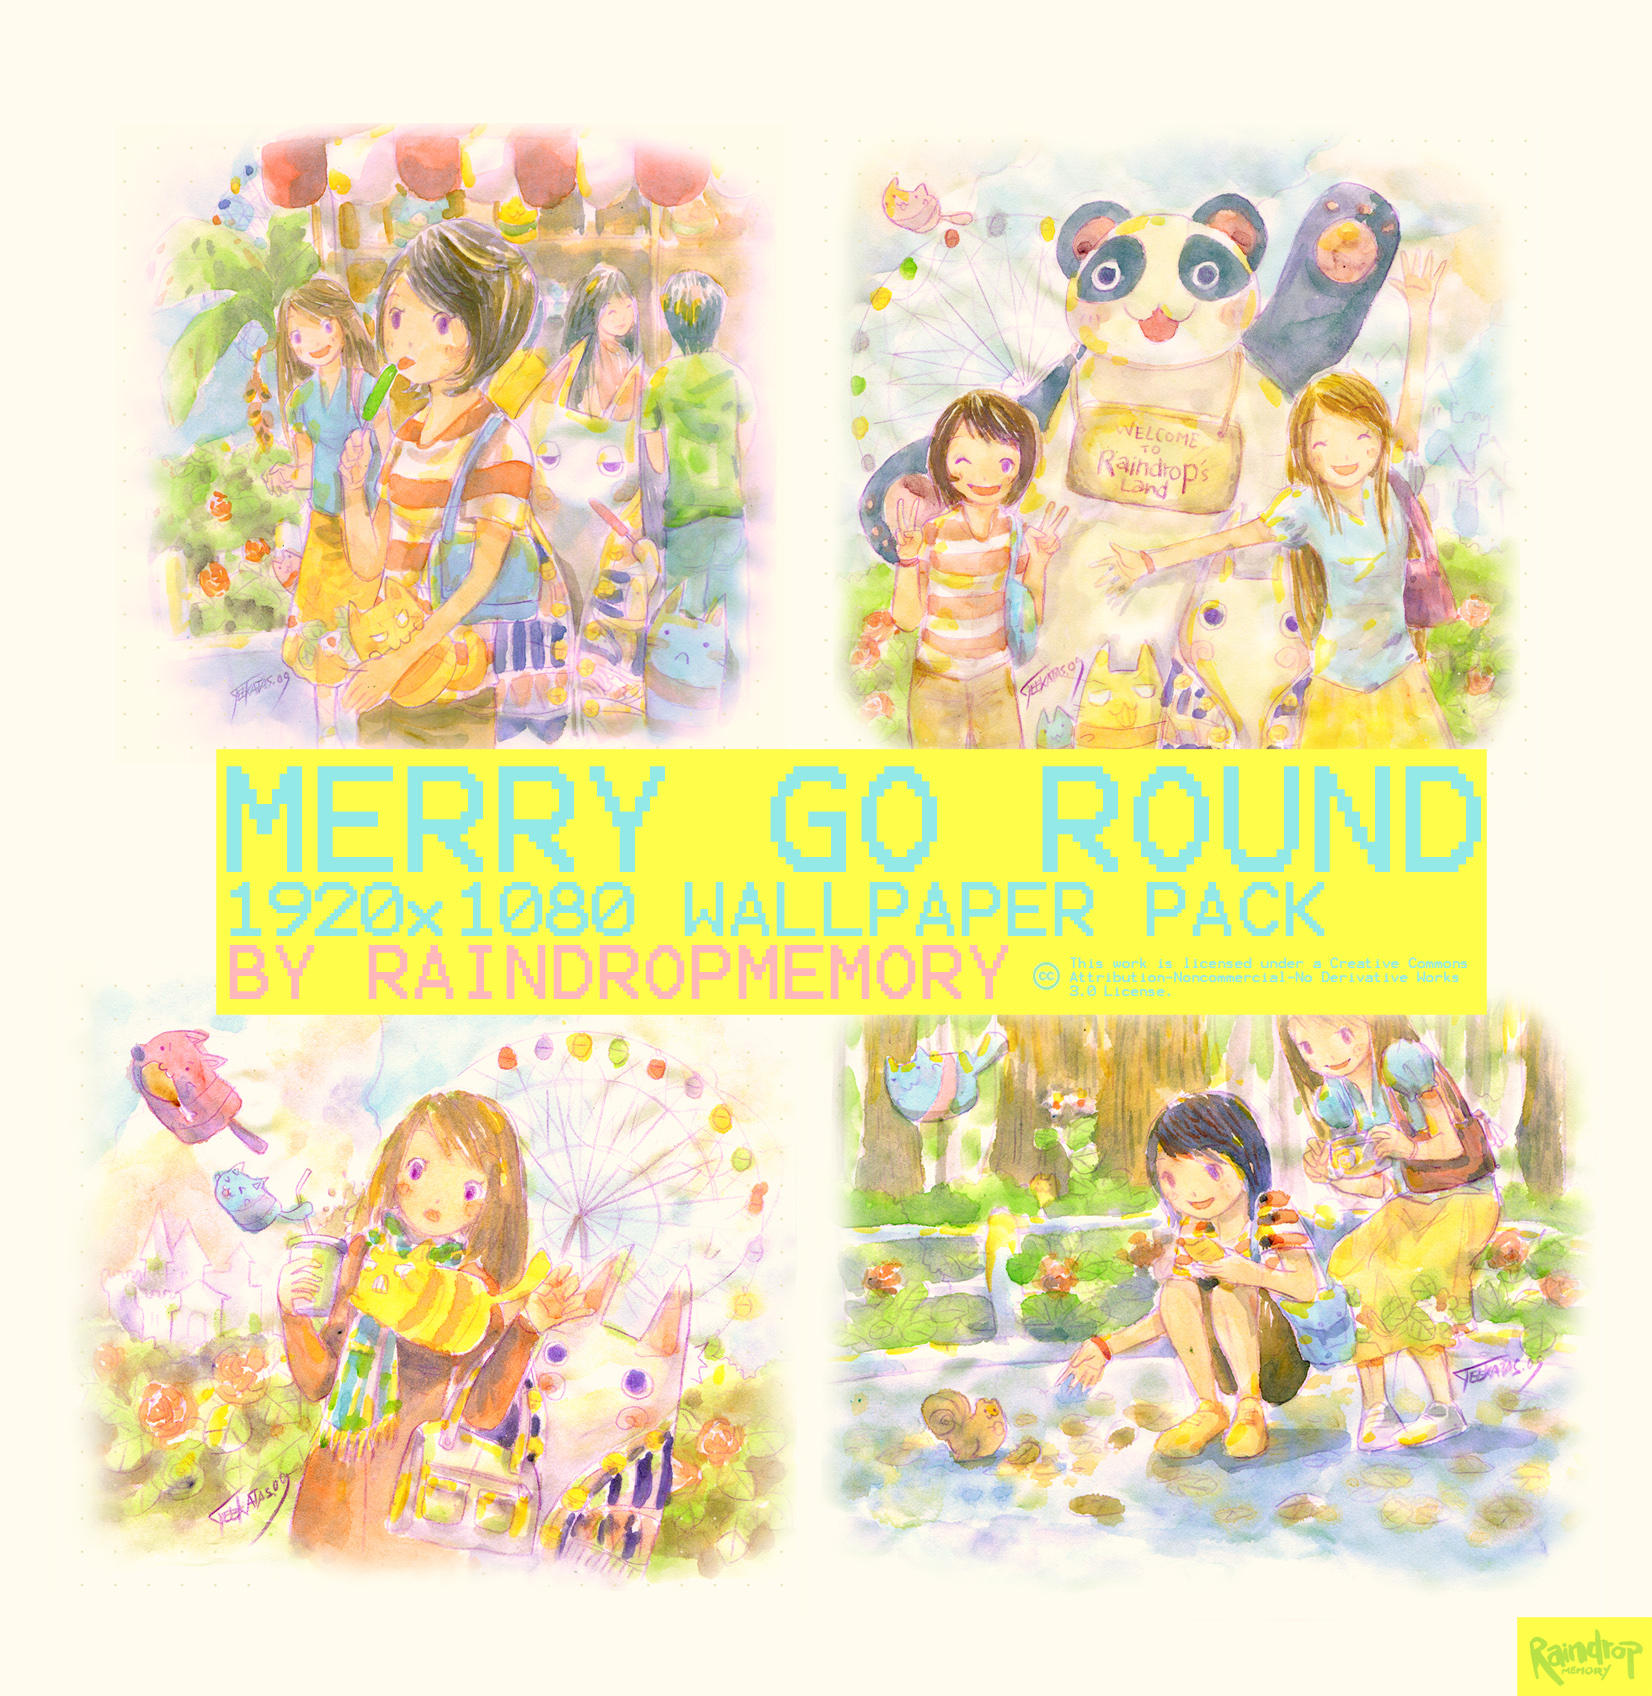 Merry go Round Wallpaper Pack by Raindropmemory